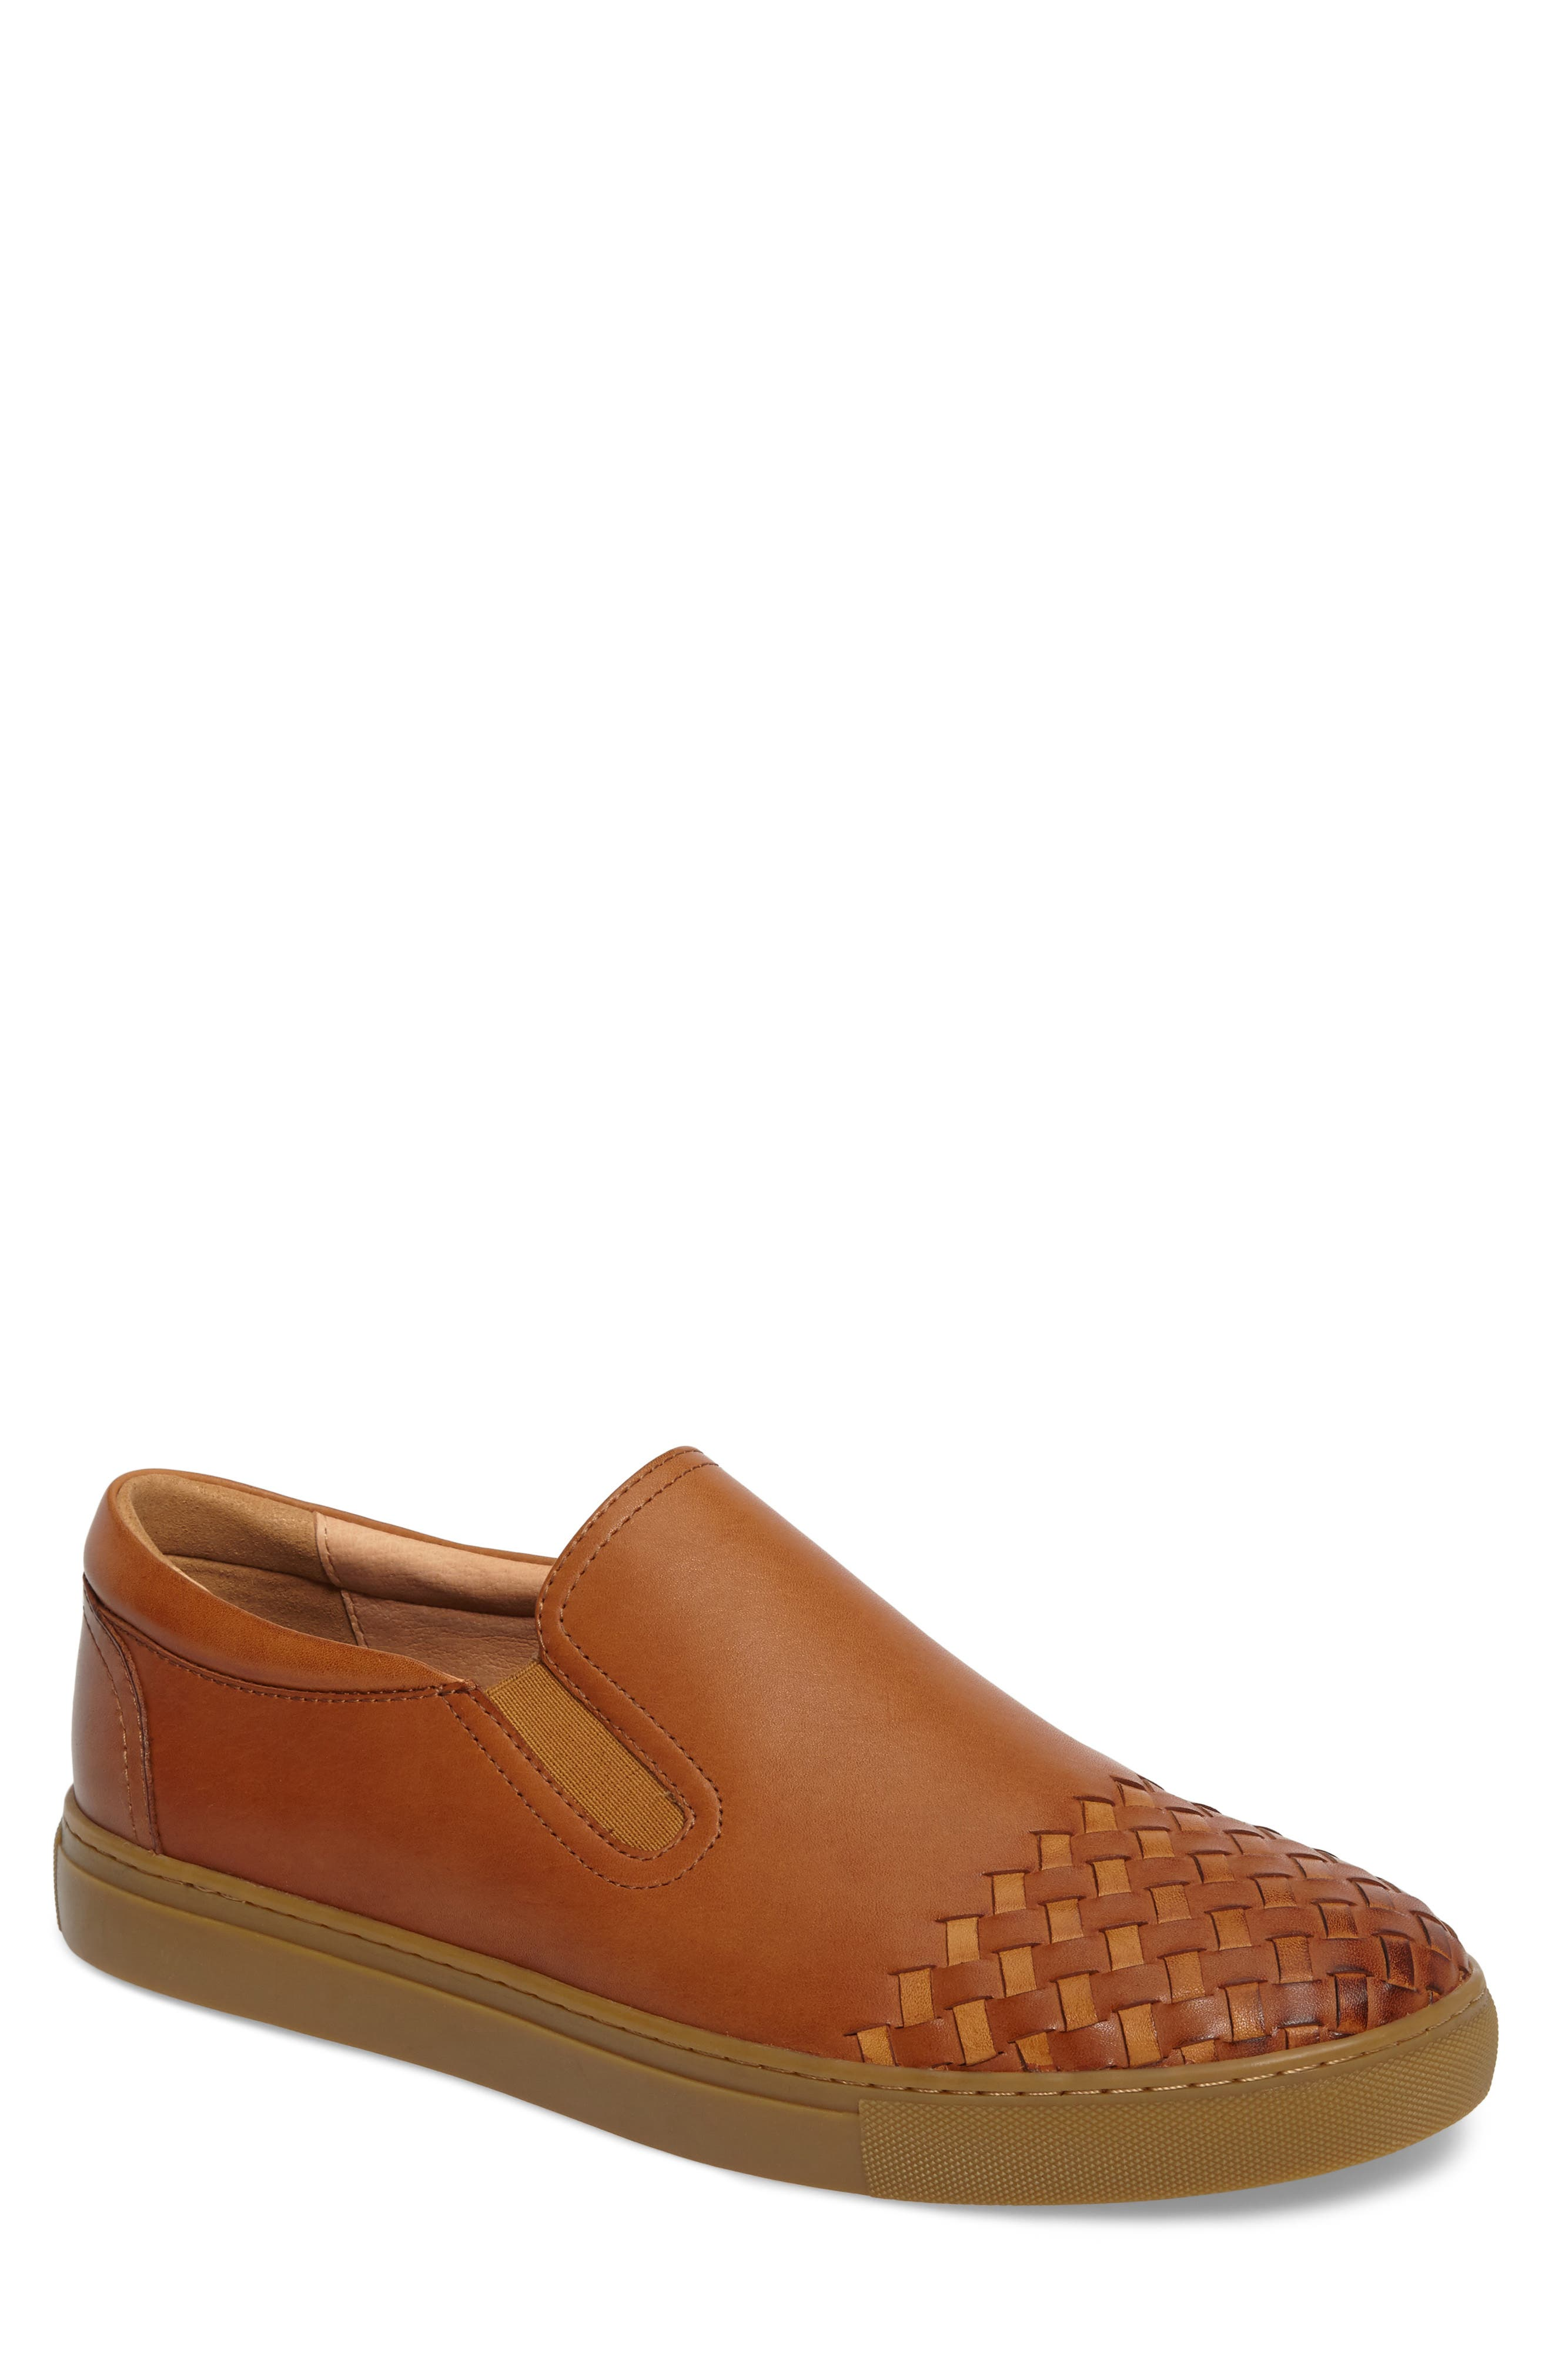 Ader Slip-On,                             Main thumbnail 1, color,                             Cognac Leather